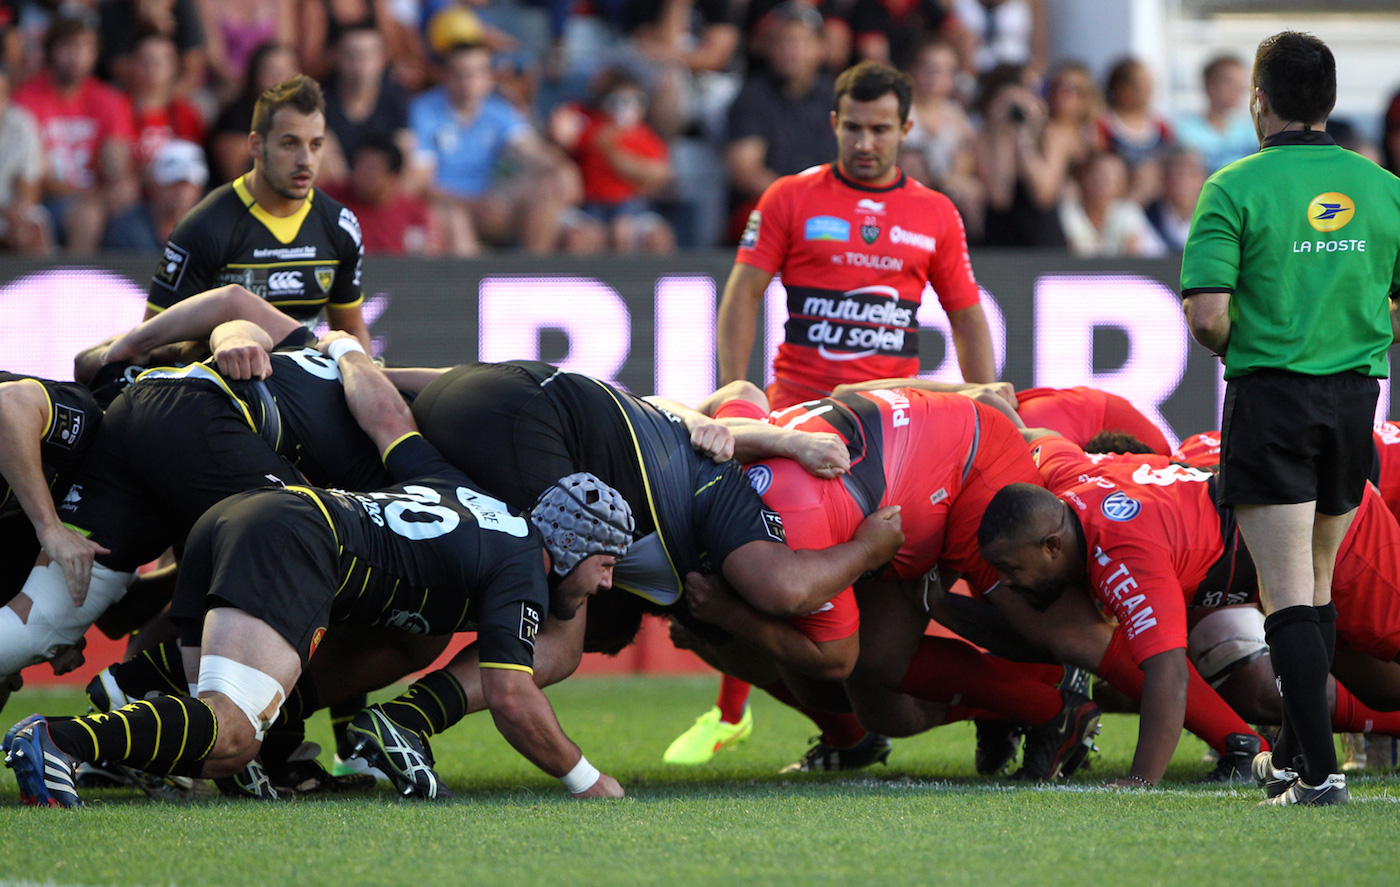 Match Rugby Top 14 La Rochelle vs Stade Toulousain en direct live streaming